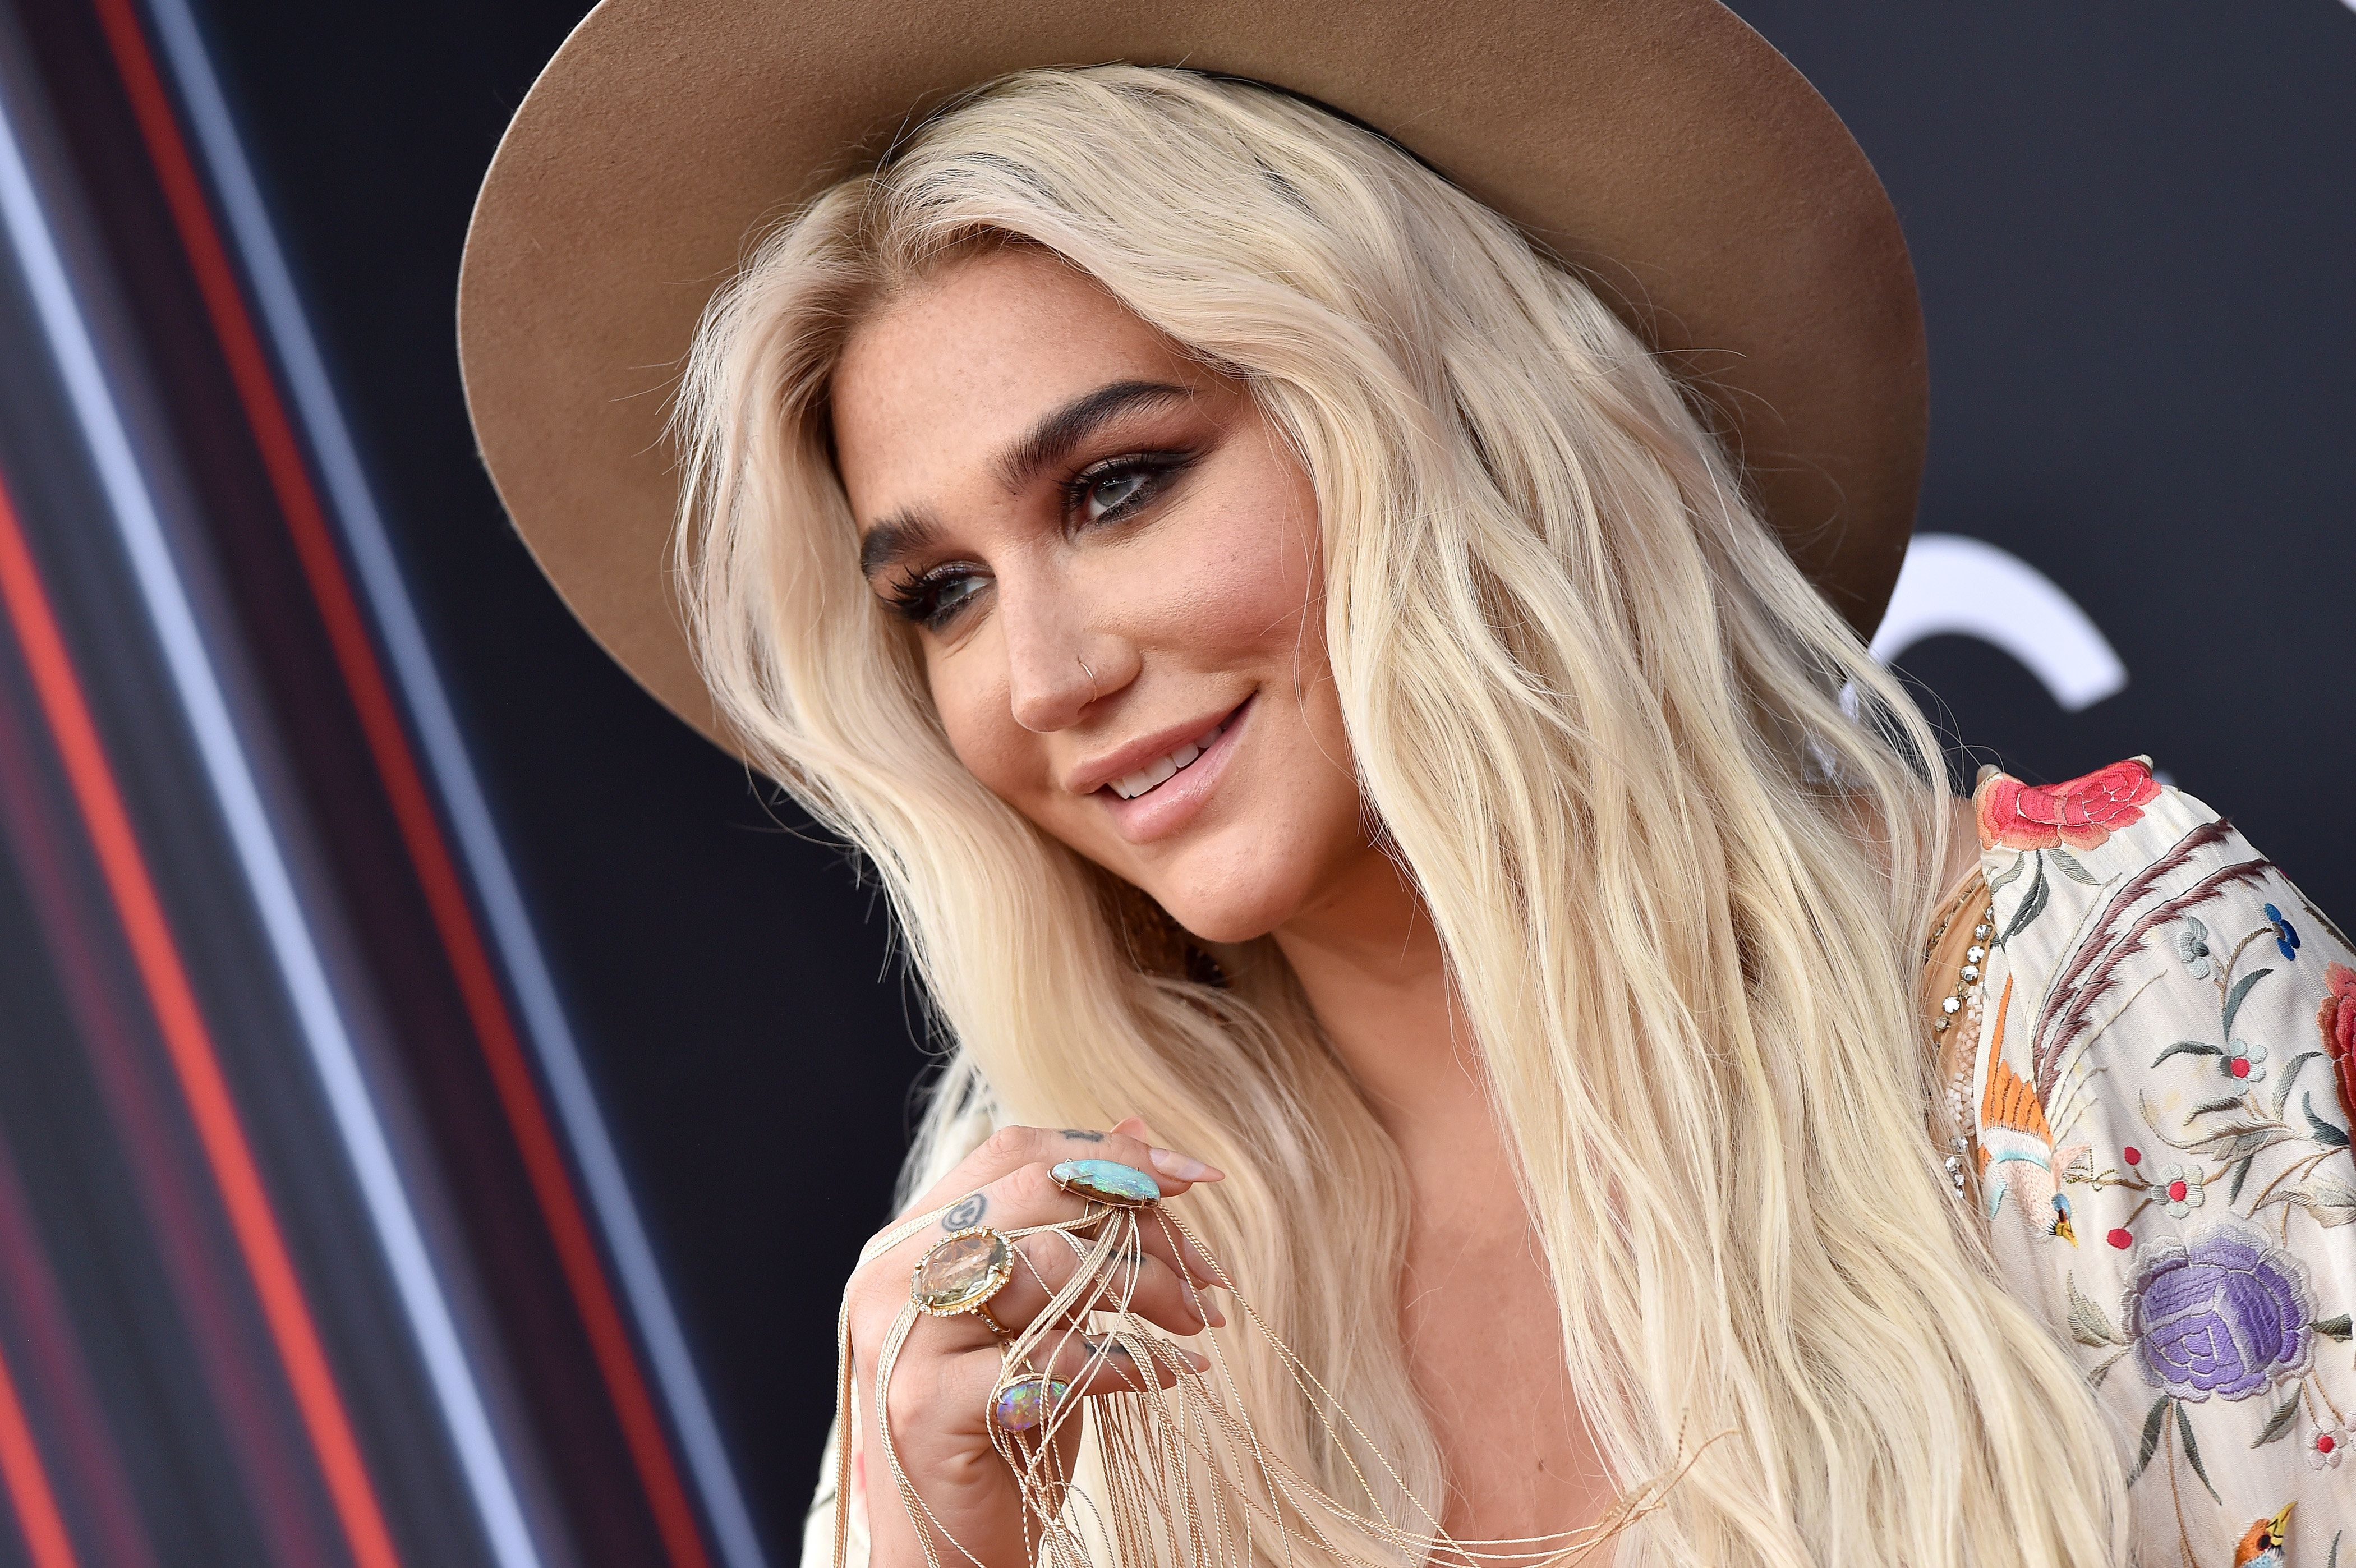 LAS VEGAS, NV - MAY 20:  Recording artist Kesha attends the 2018 Billboard Music Awards at MGM Grand Garden Arena on May 20, 2018 in Las Vegas, Nevada.  (Photo by Axelle/Bauer-Griffin/FilmMagic)